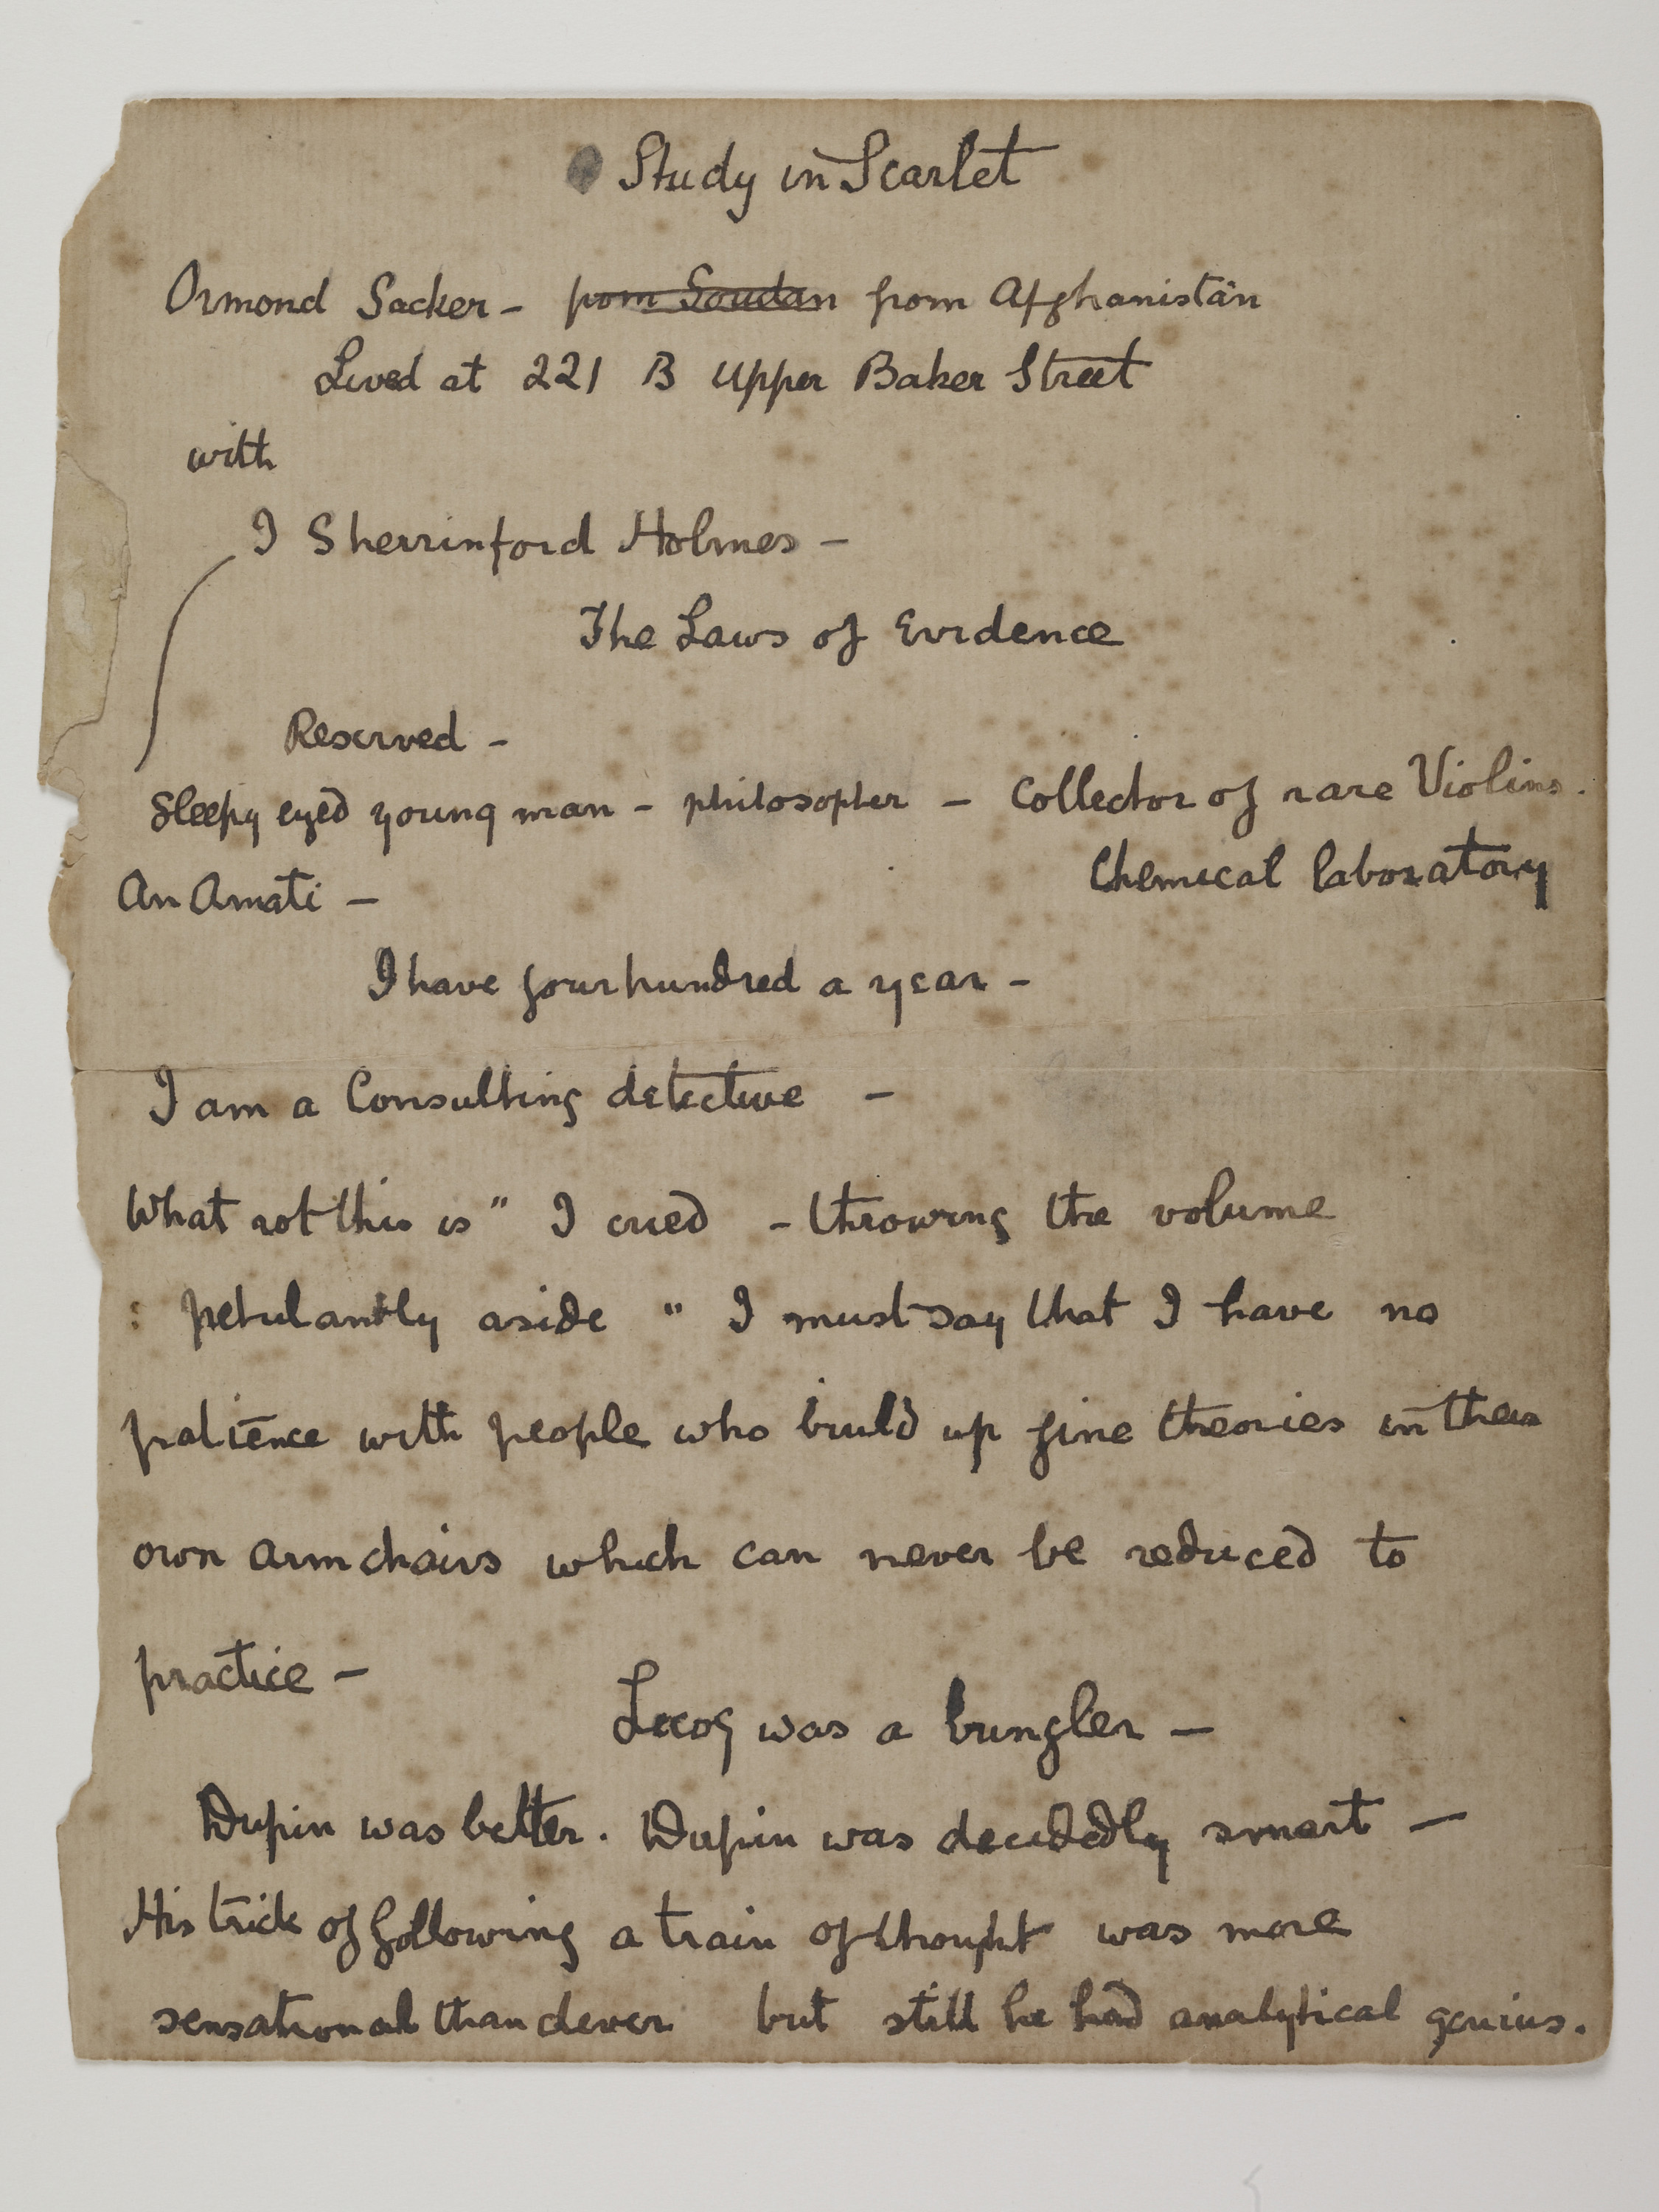 Conan Doyle's original notes. (Museum of London)